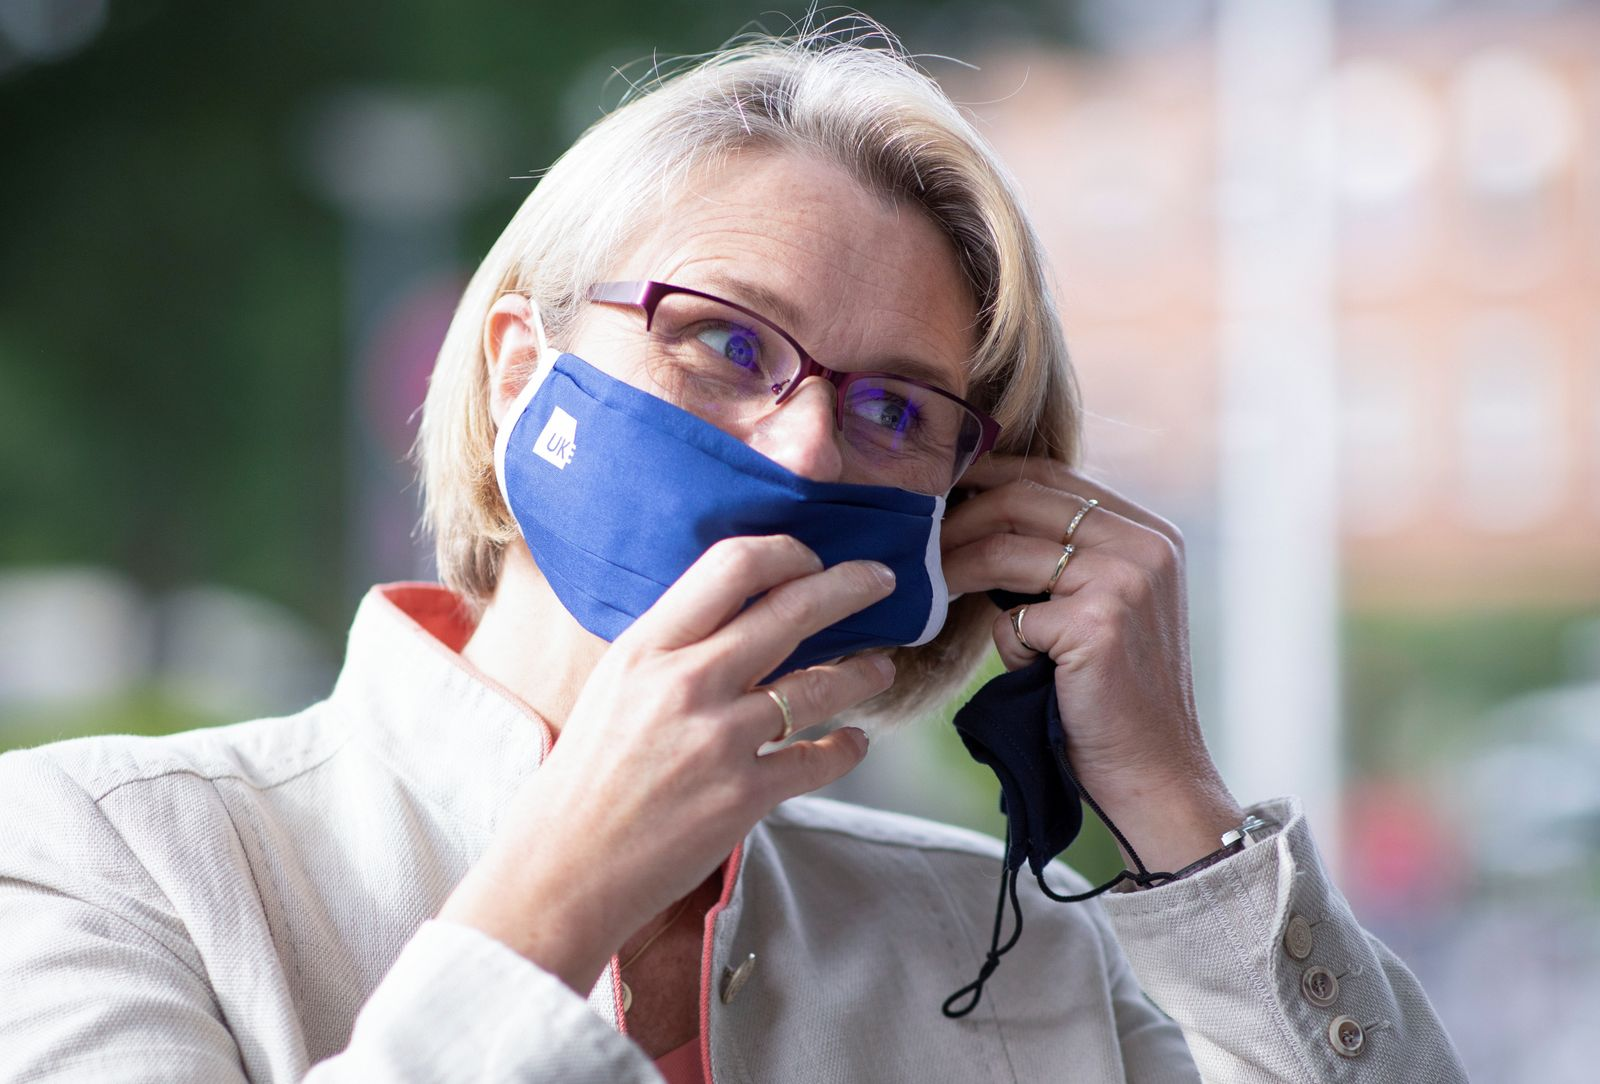 German minister for Education and Research Karliczek puts on a face mask during her visit to the Hamburg-Eppendorf university clinic in Hamburg